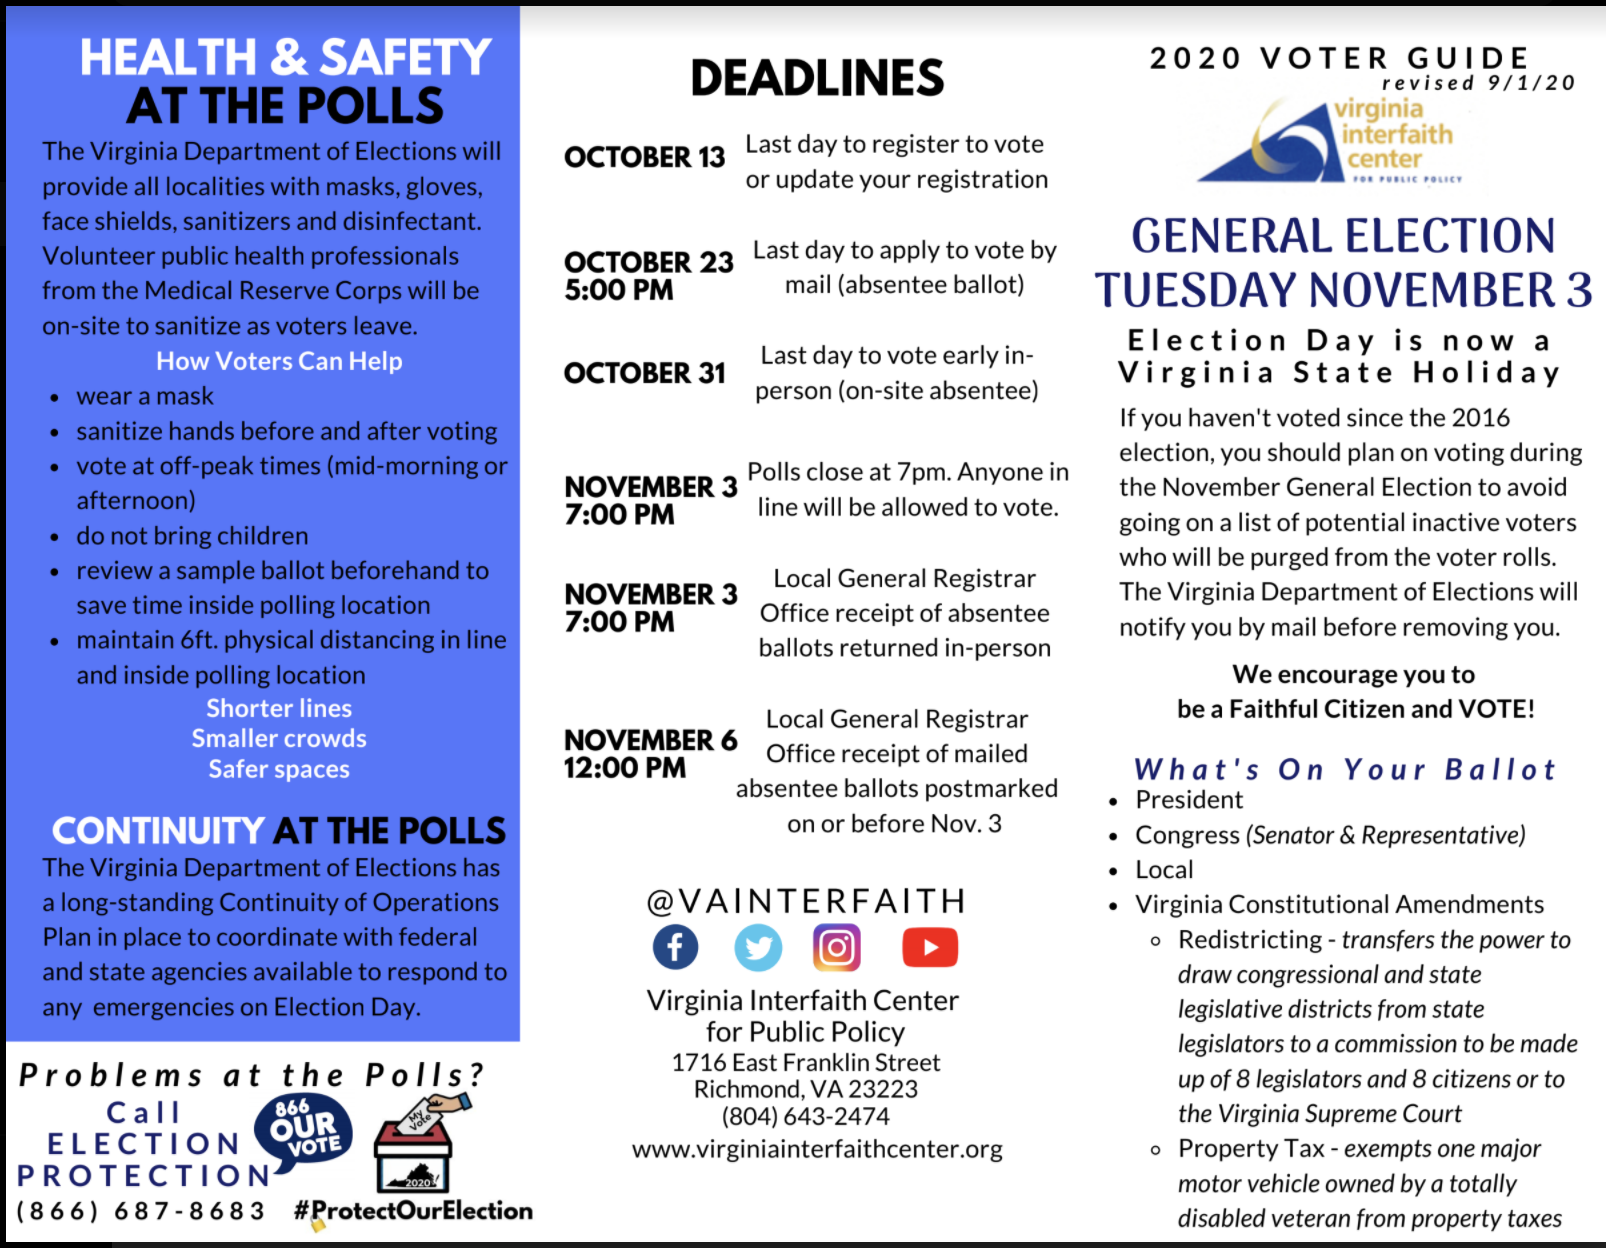 2020 voter guide from Virginia Interfaith Center for Public Policy headline health and safety at the polls deadlines continuity at the polls election day is now a virginia state holiday